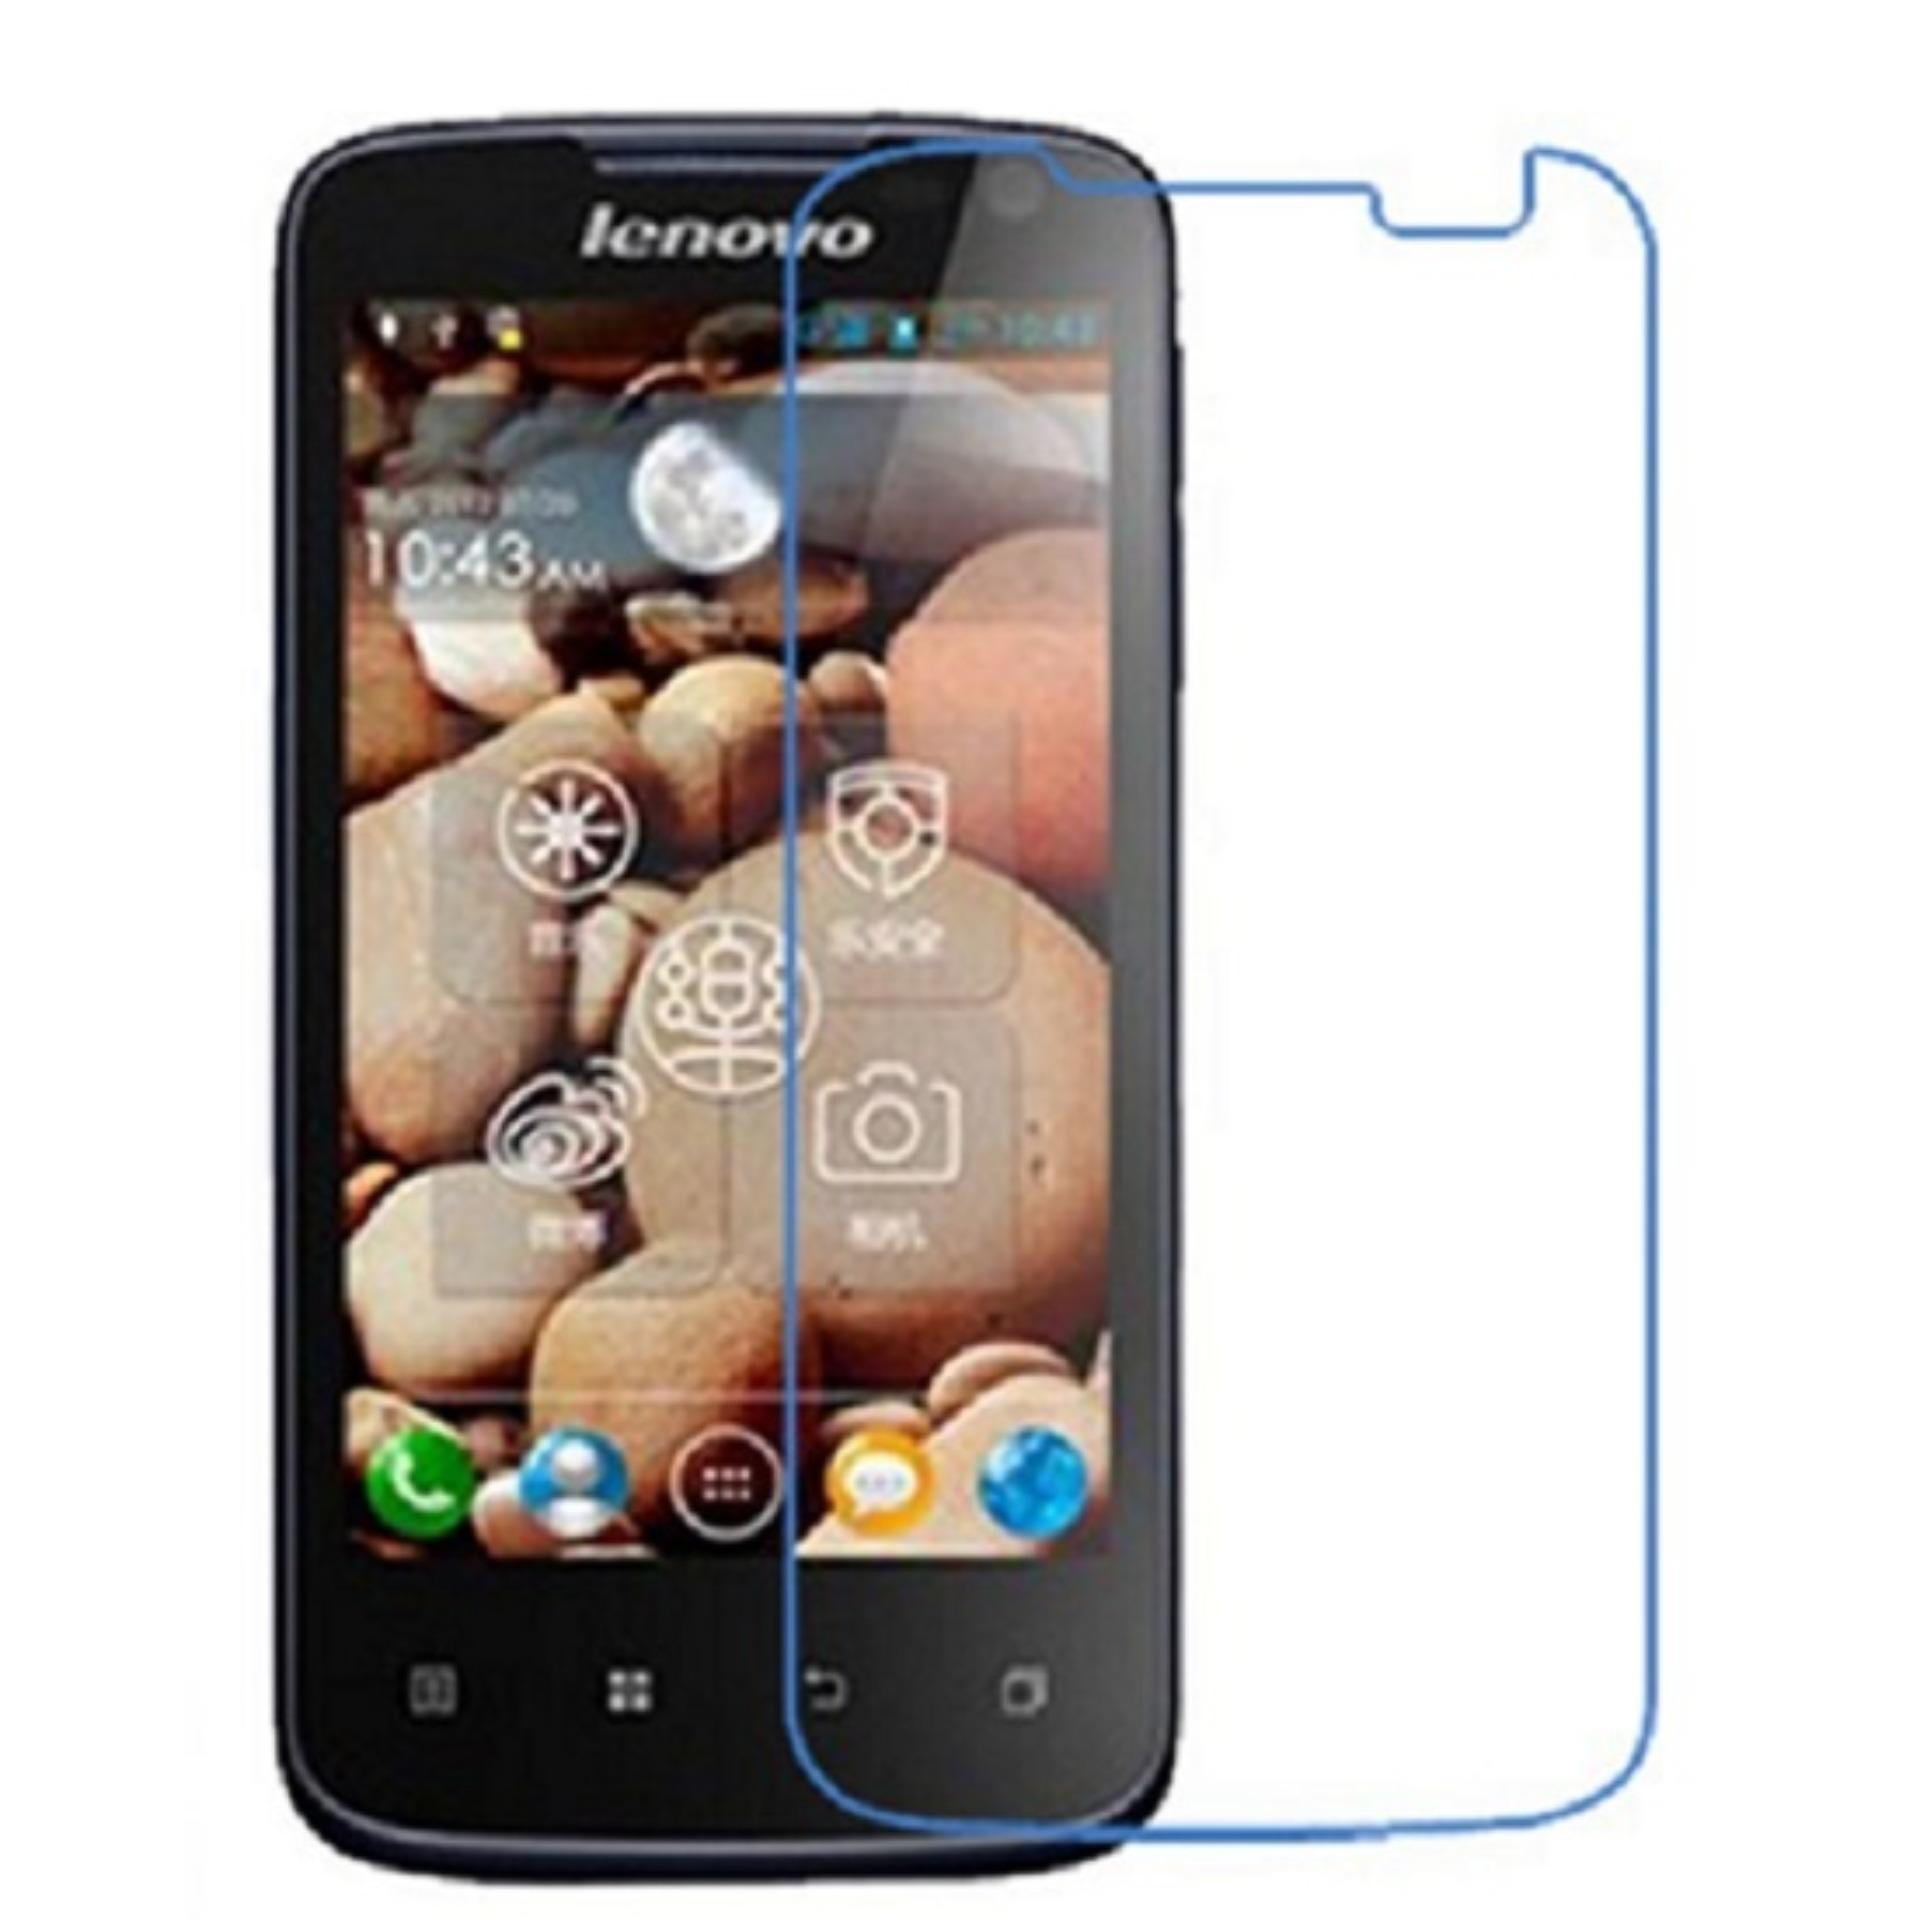 Vn Lenovo A516 Tempered Glass Screen Protector 0.32mm - Anti Crash Film - Bening Transparan